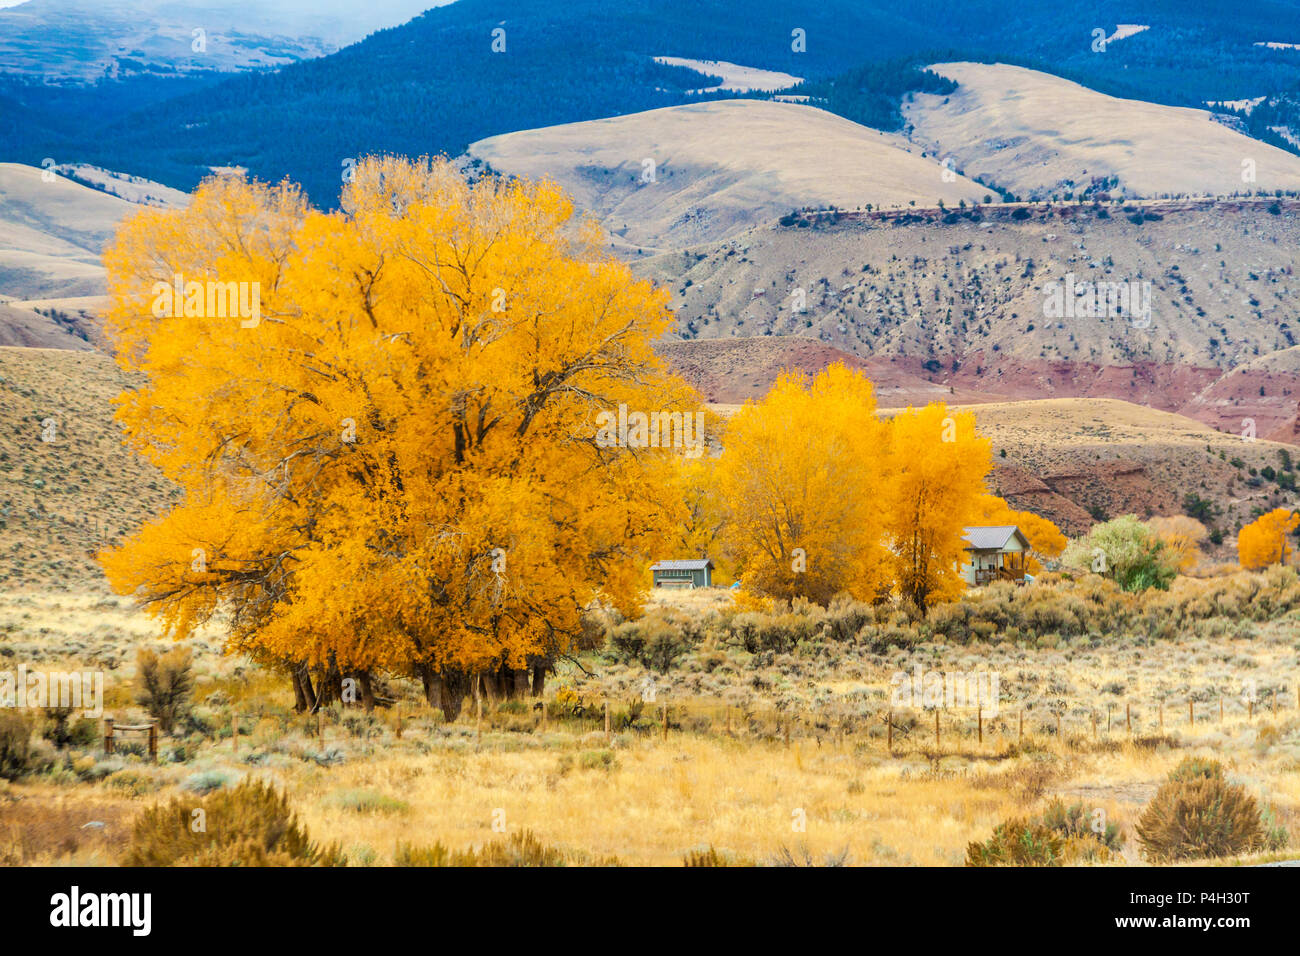 Autumn color along scenic highway US 287 through rural ranching country in the hills and mountains of central Wyoming. Stock Photo